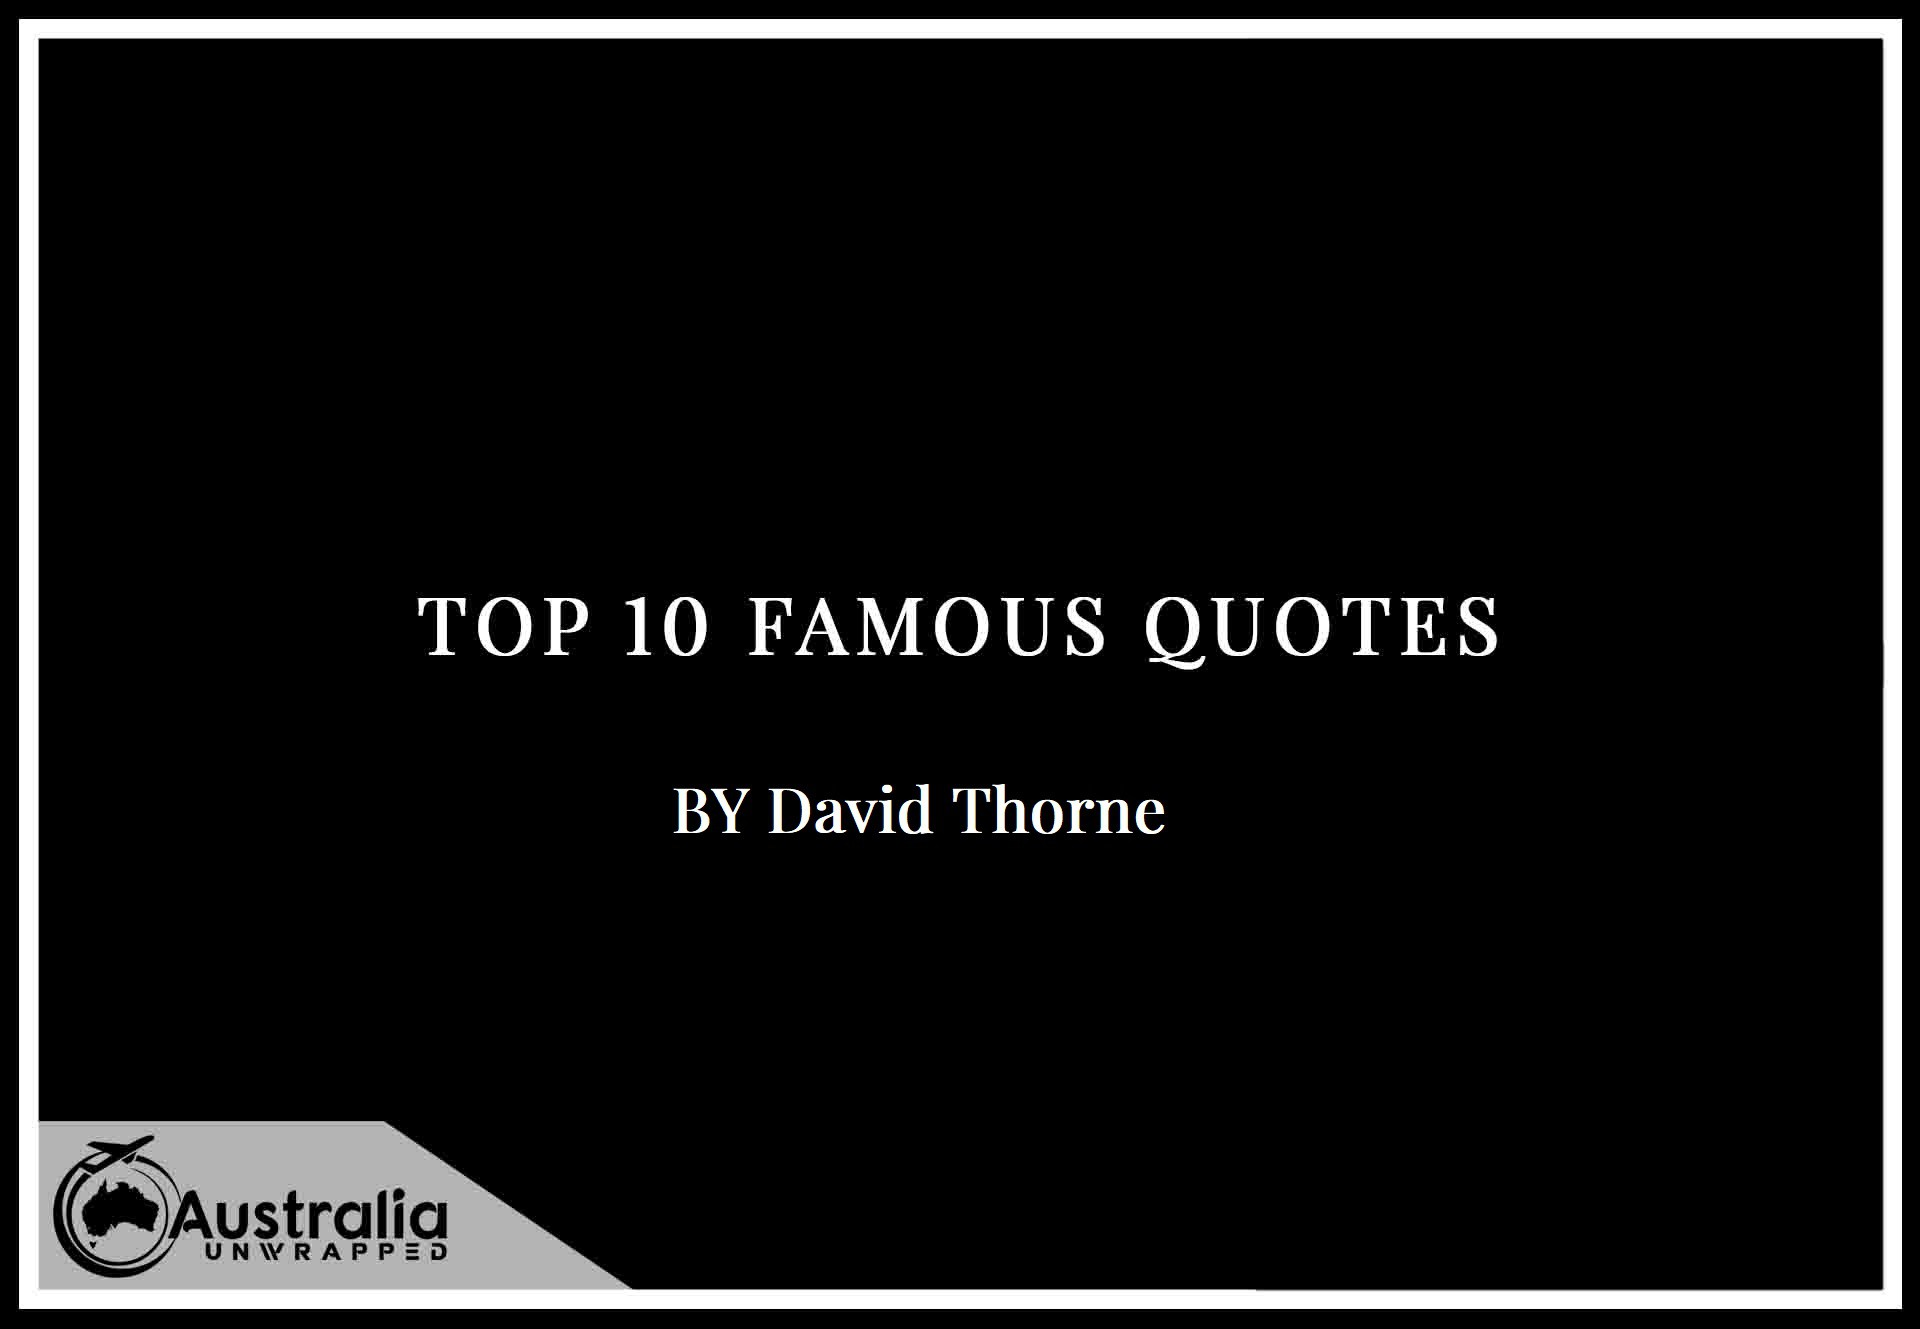 Top 10 Famous Quotes by Author David Thorne